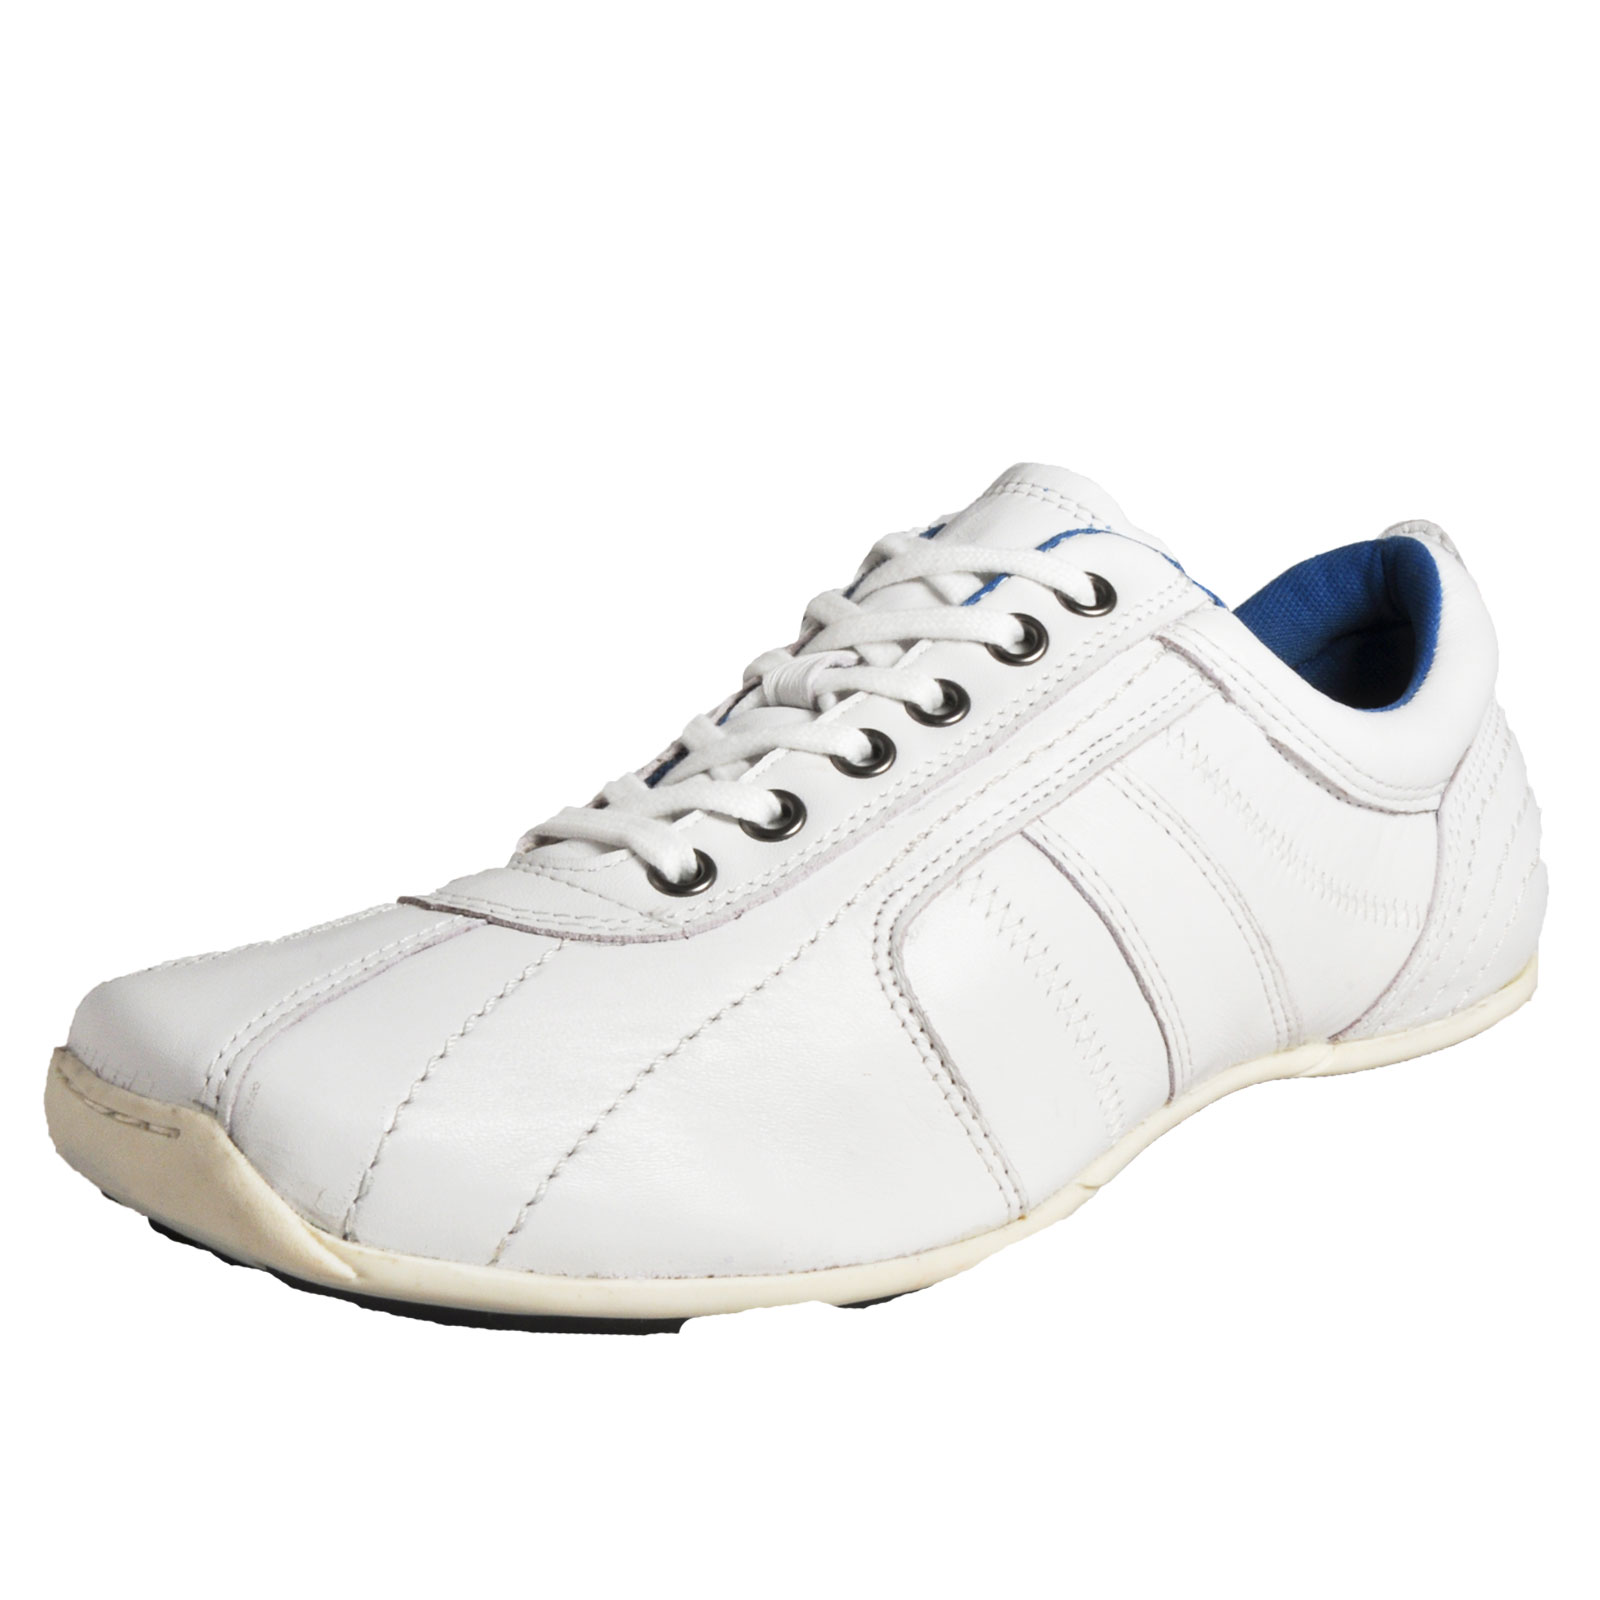 Red Tape Barney Mens Casual Leather Trainers Sports Shoes White Ebay